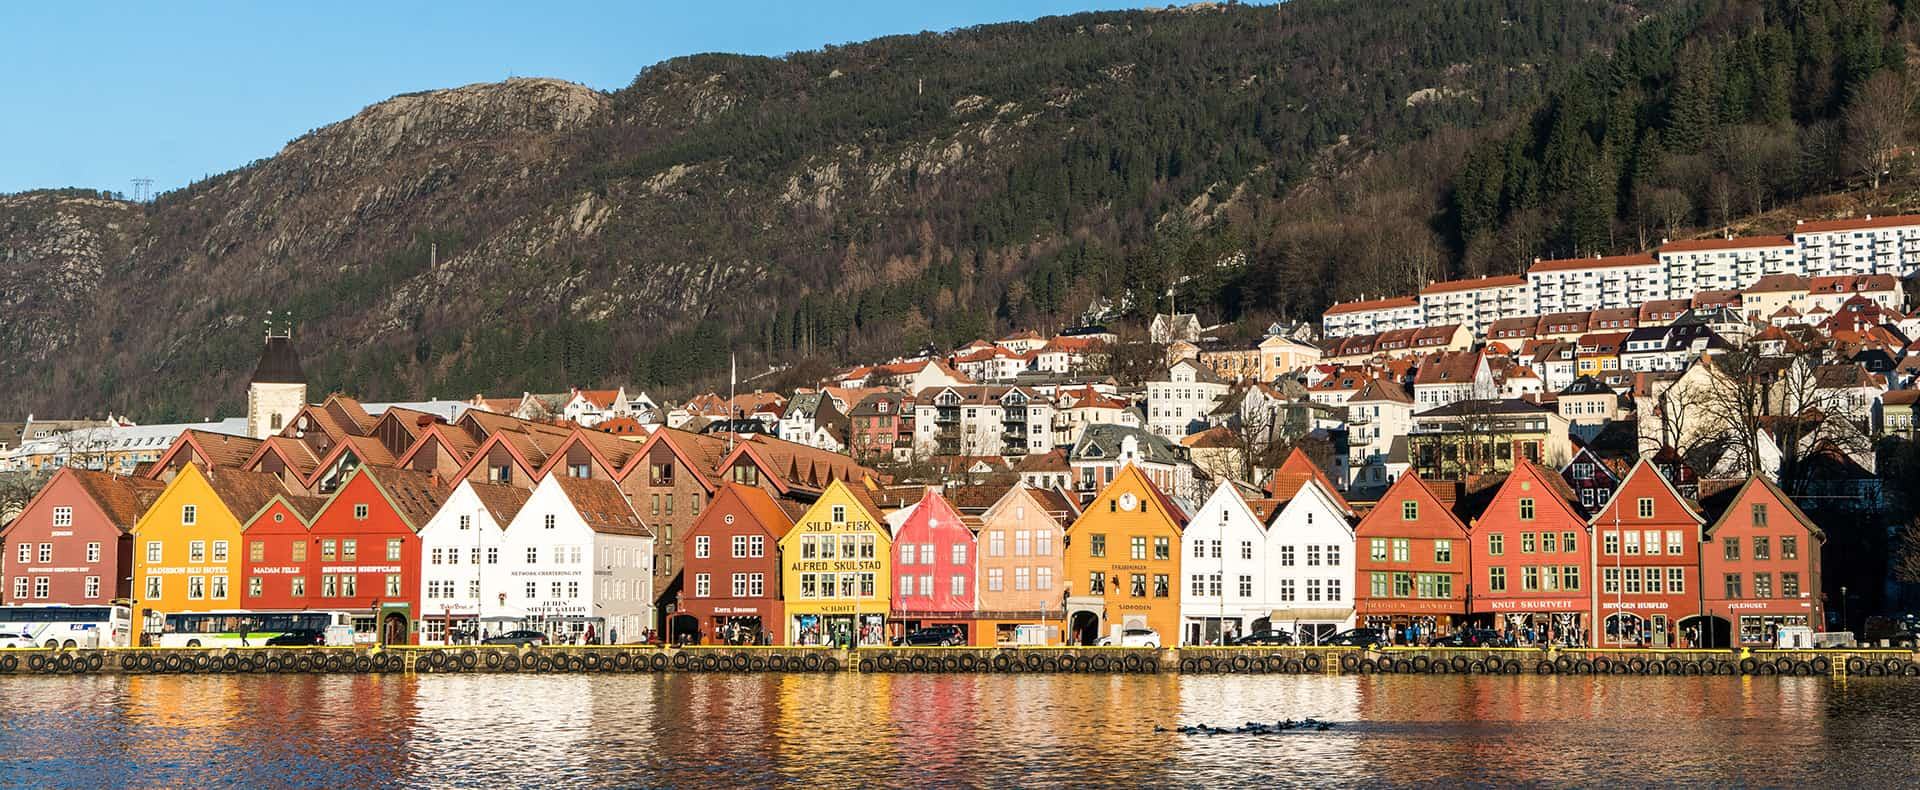 Scandinavia, Norway, Bergen